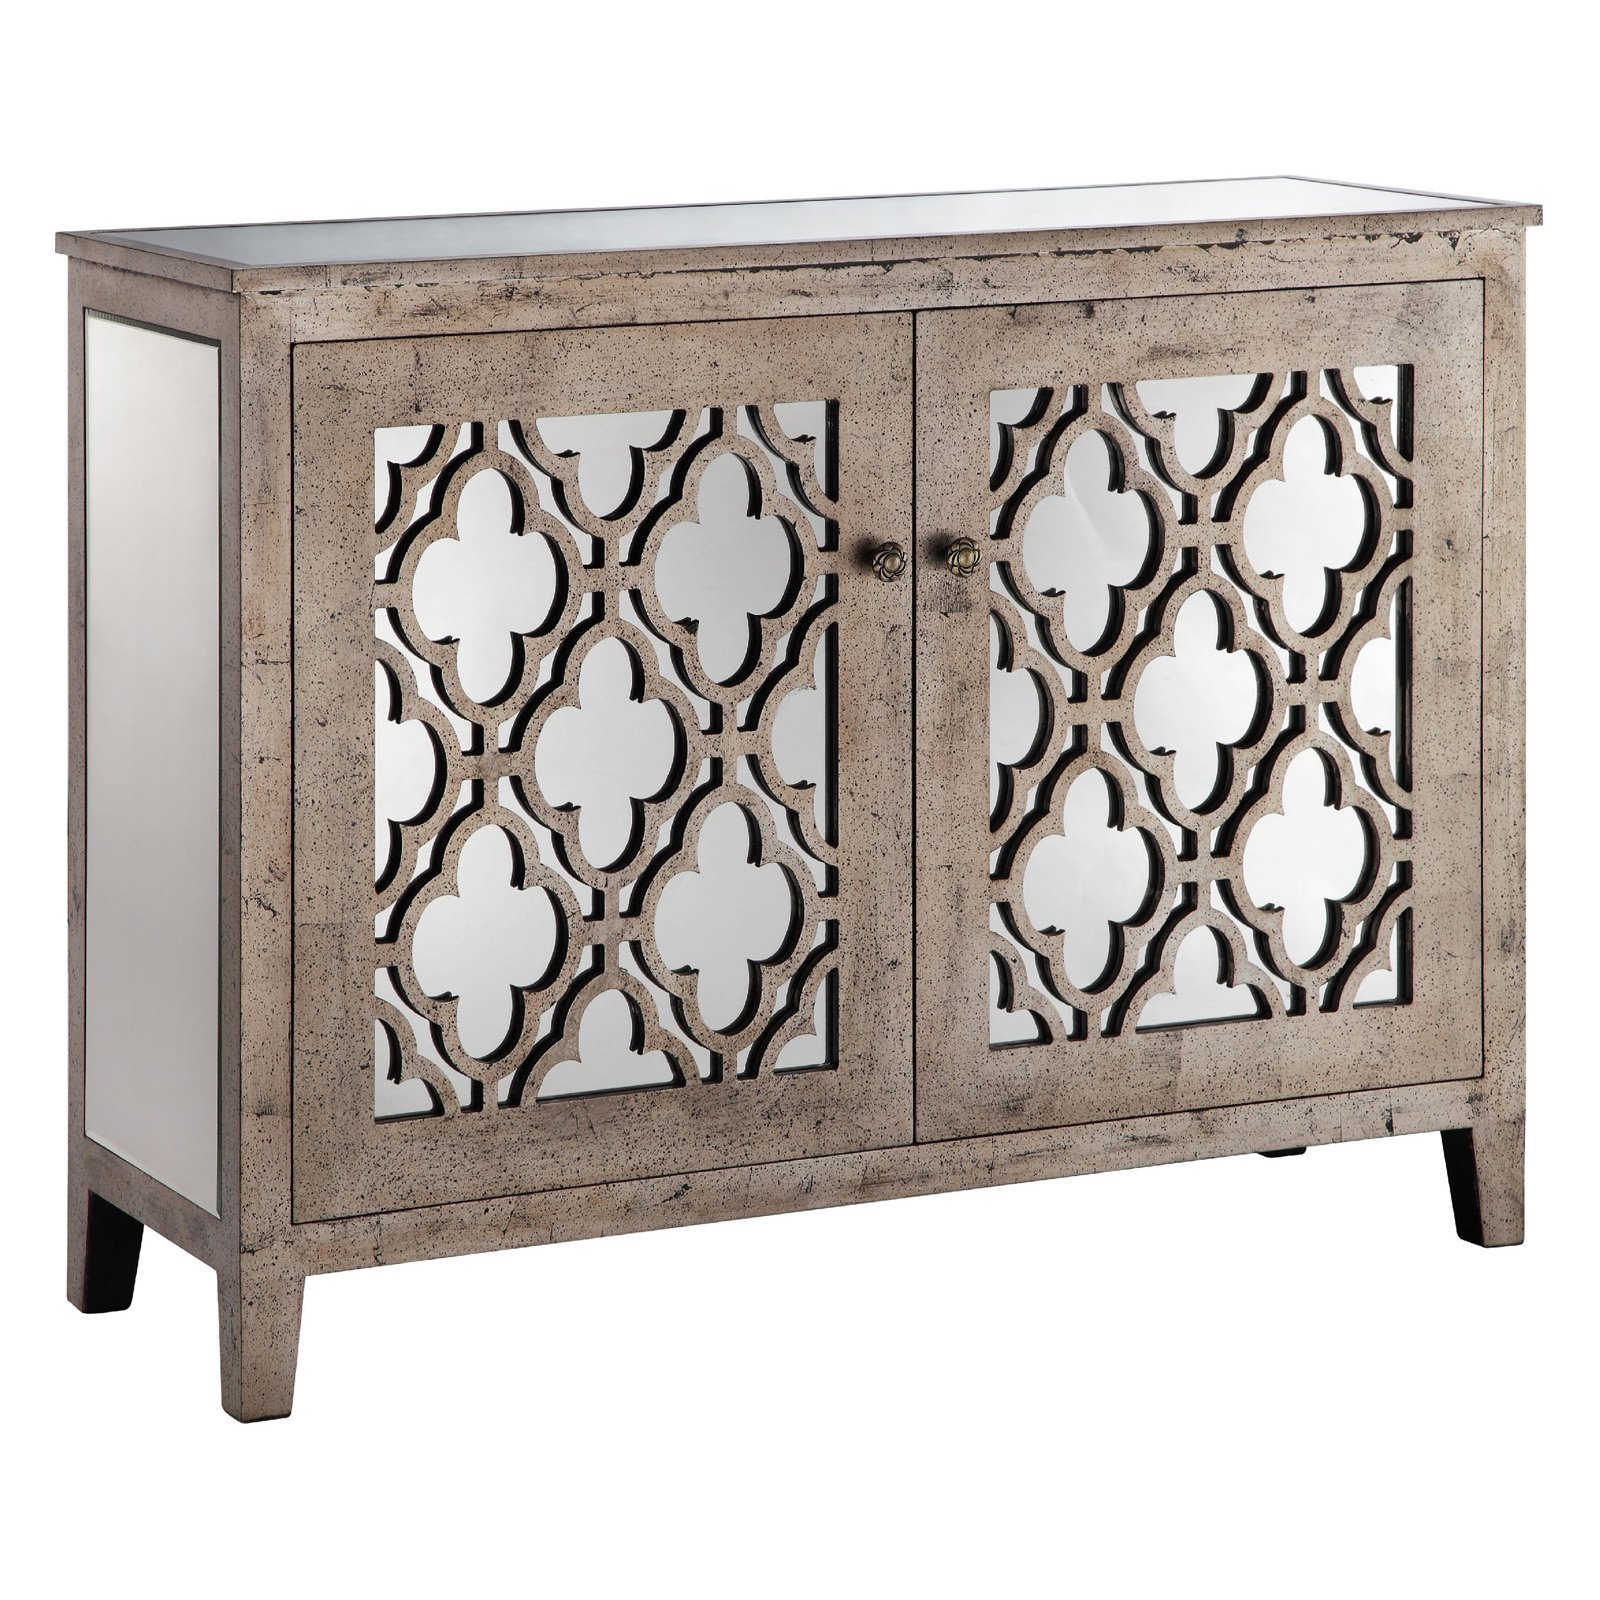 Stein World Aimee 2 Door Accent Chest